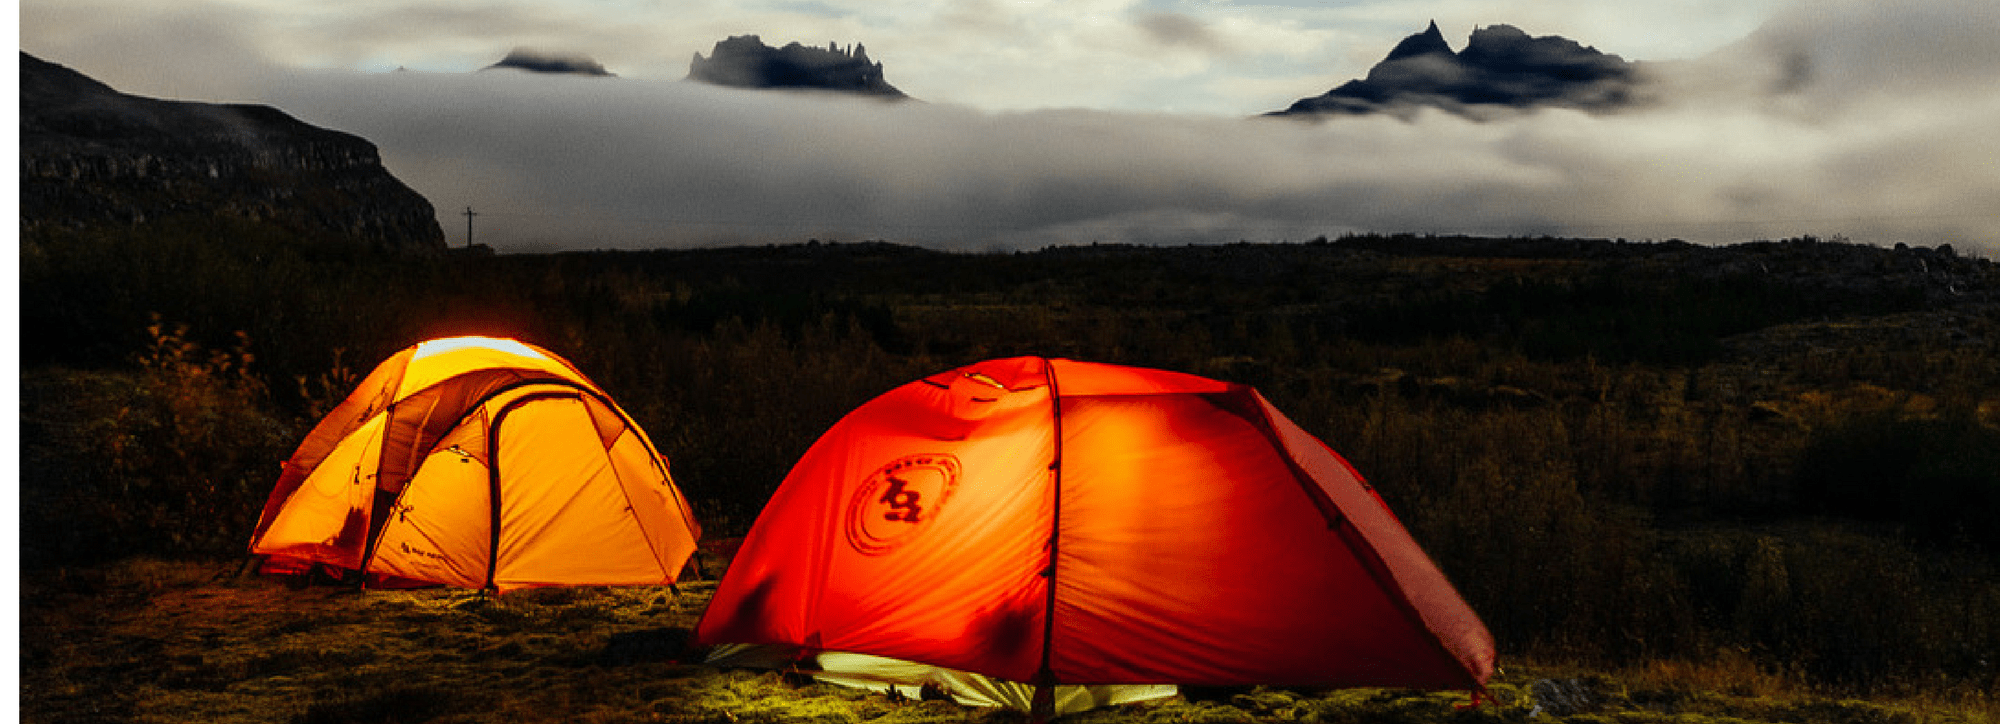 The Eco-Explorer: Camping Gear that Leaves No Trace